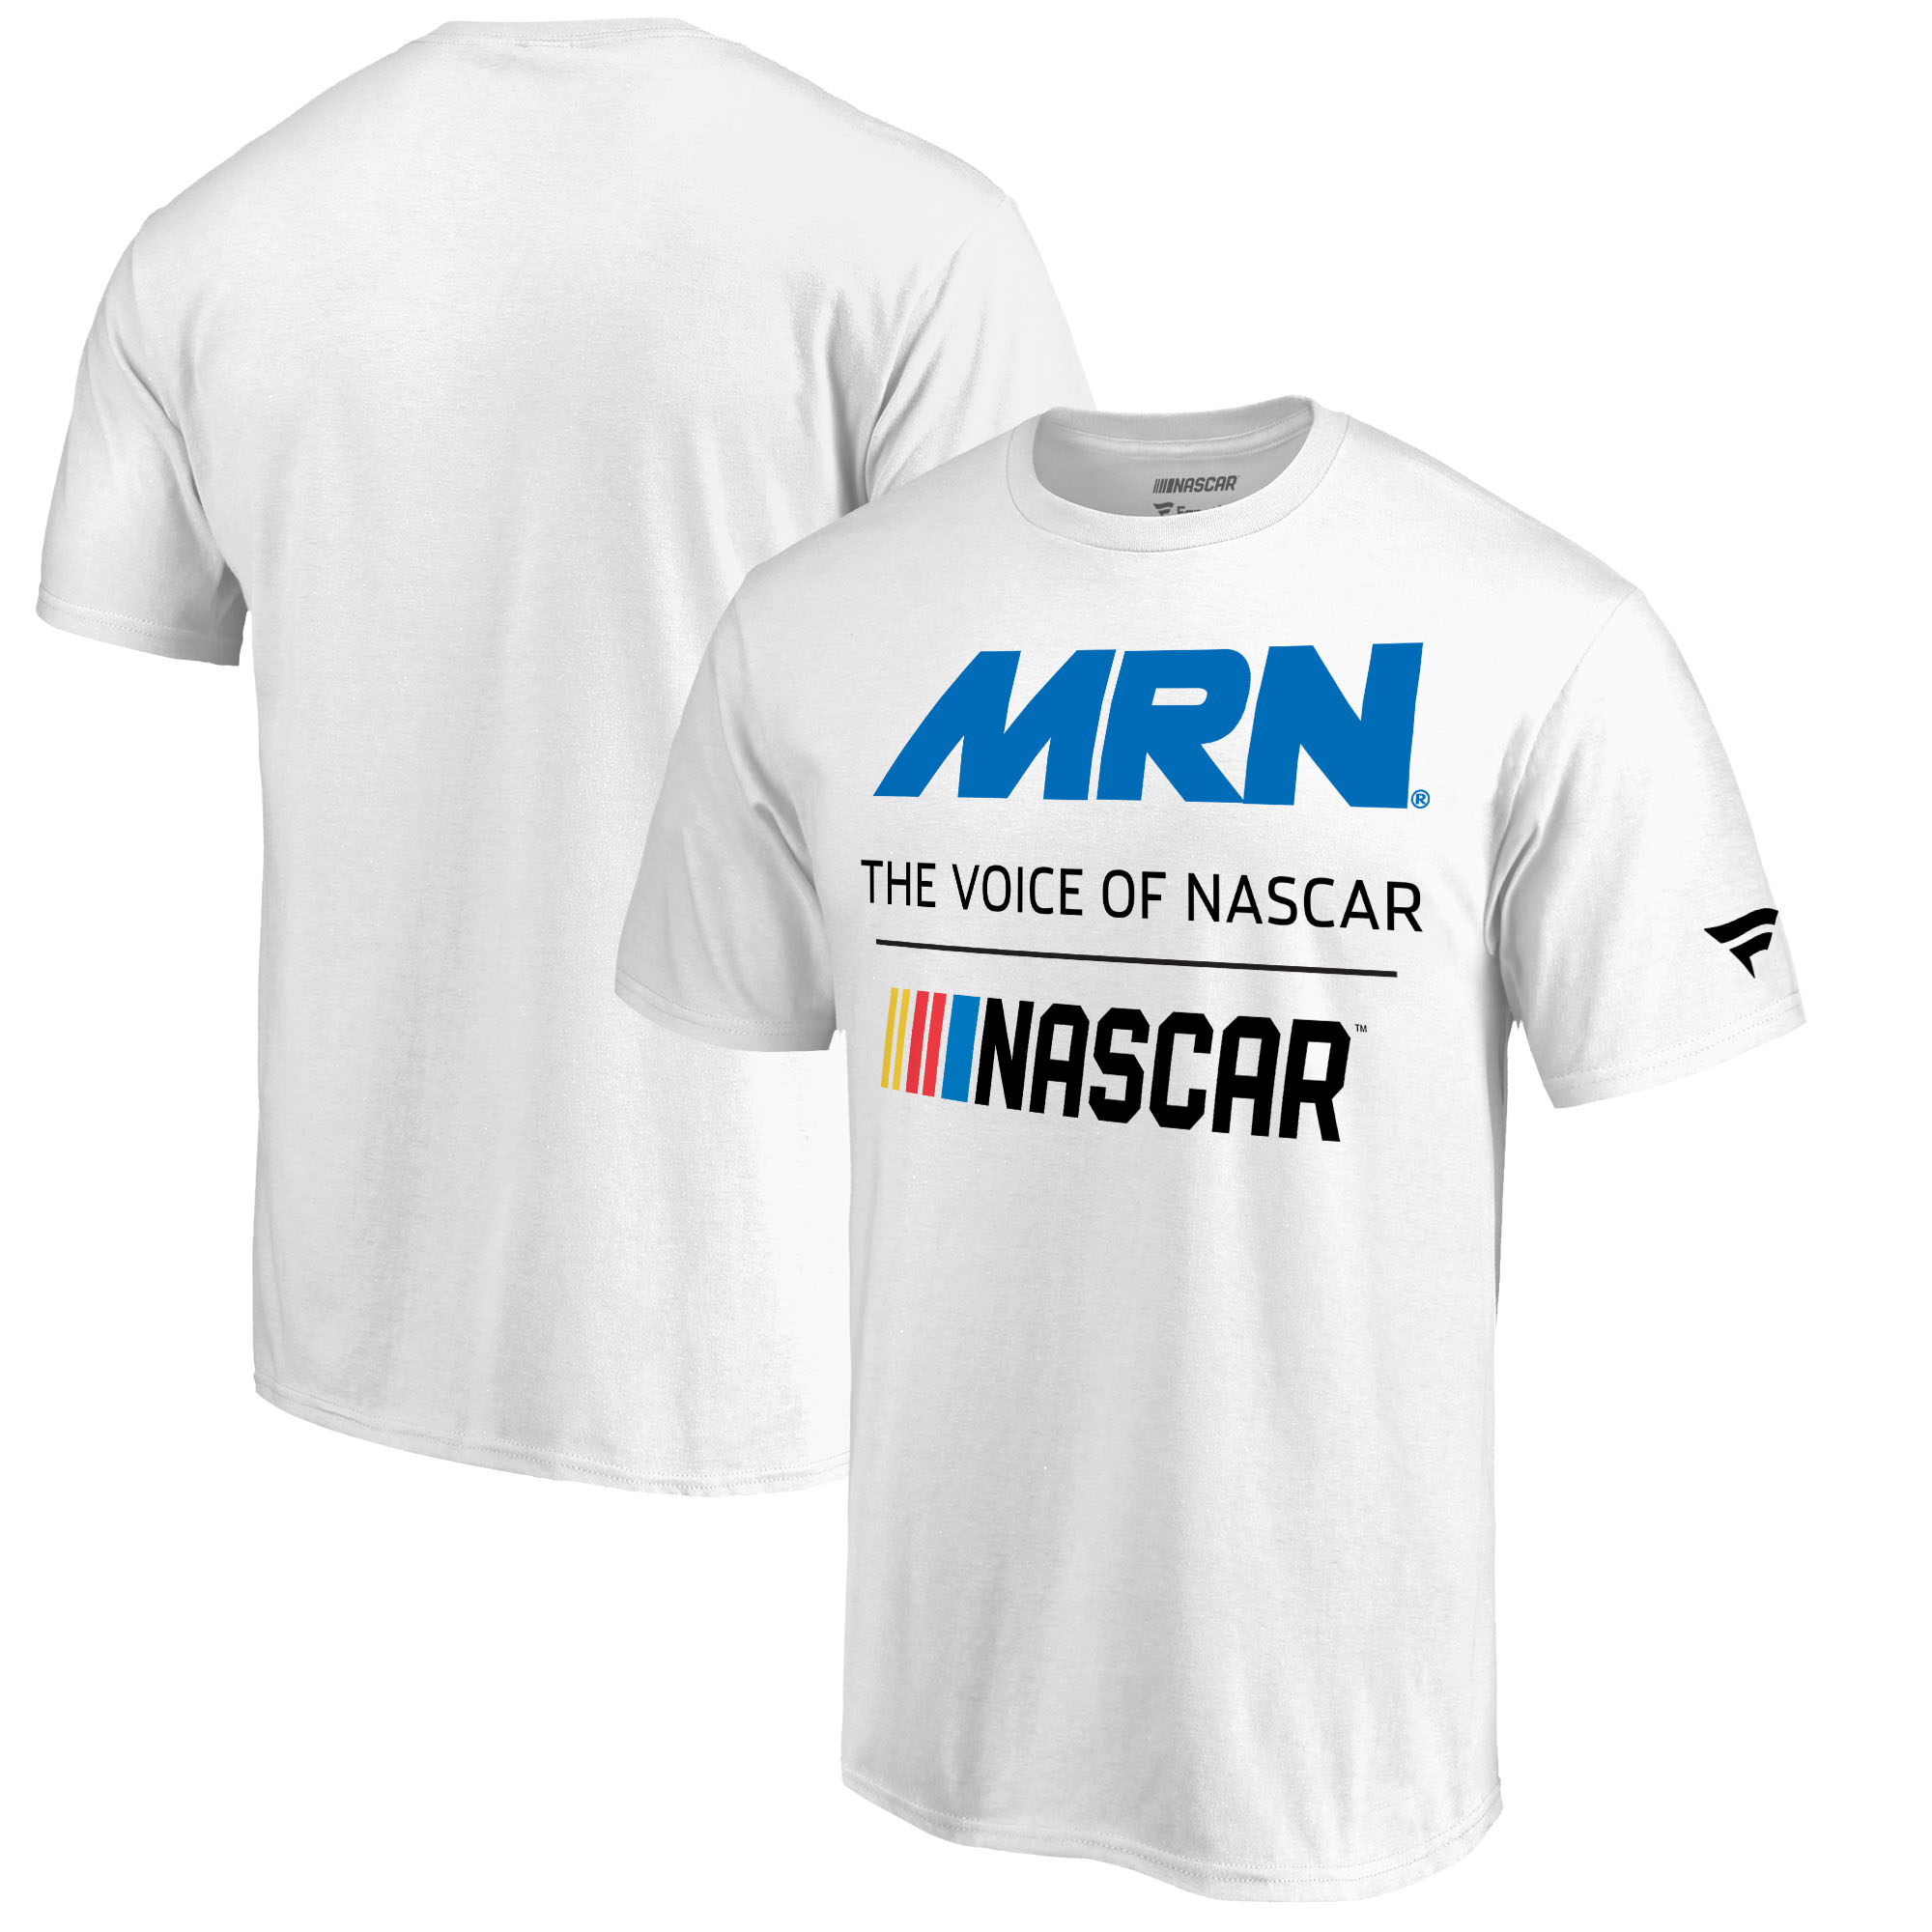 Fanatics Branded Motor Racing Network NASCAR Voice T-Shirt - White